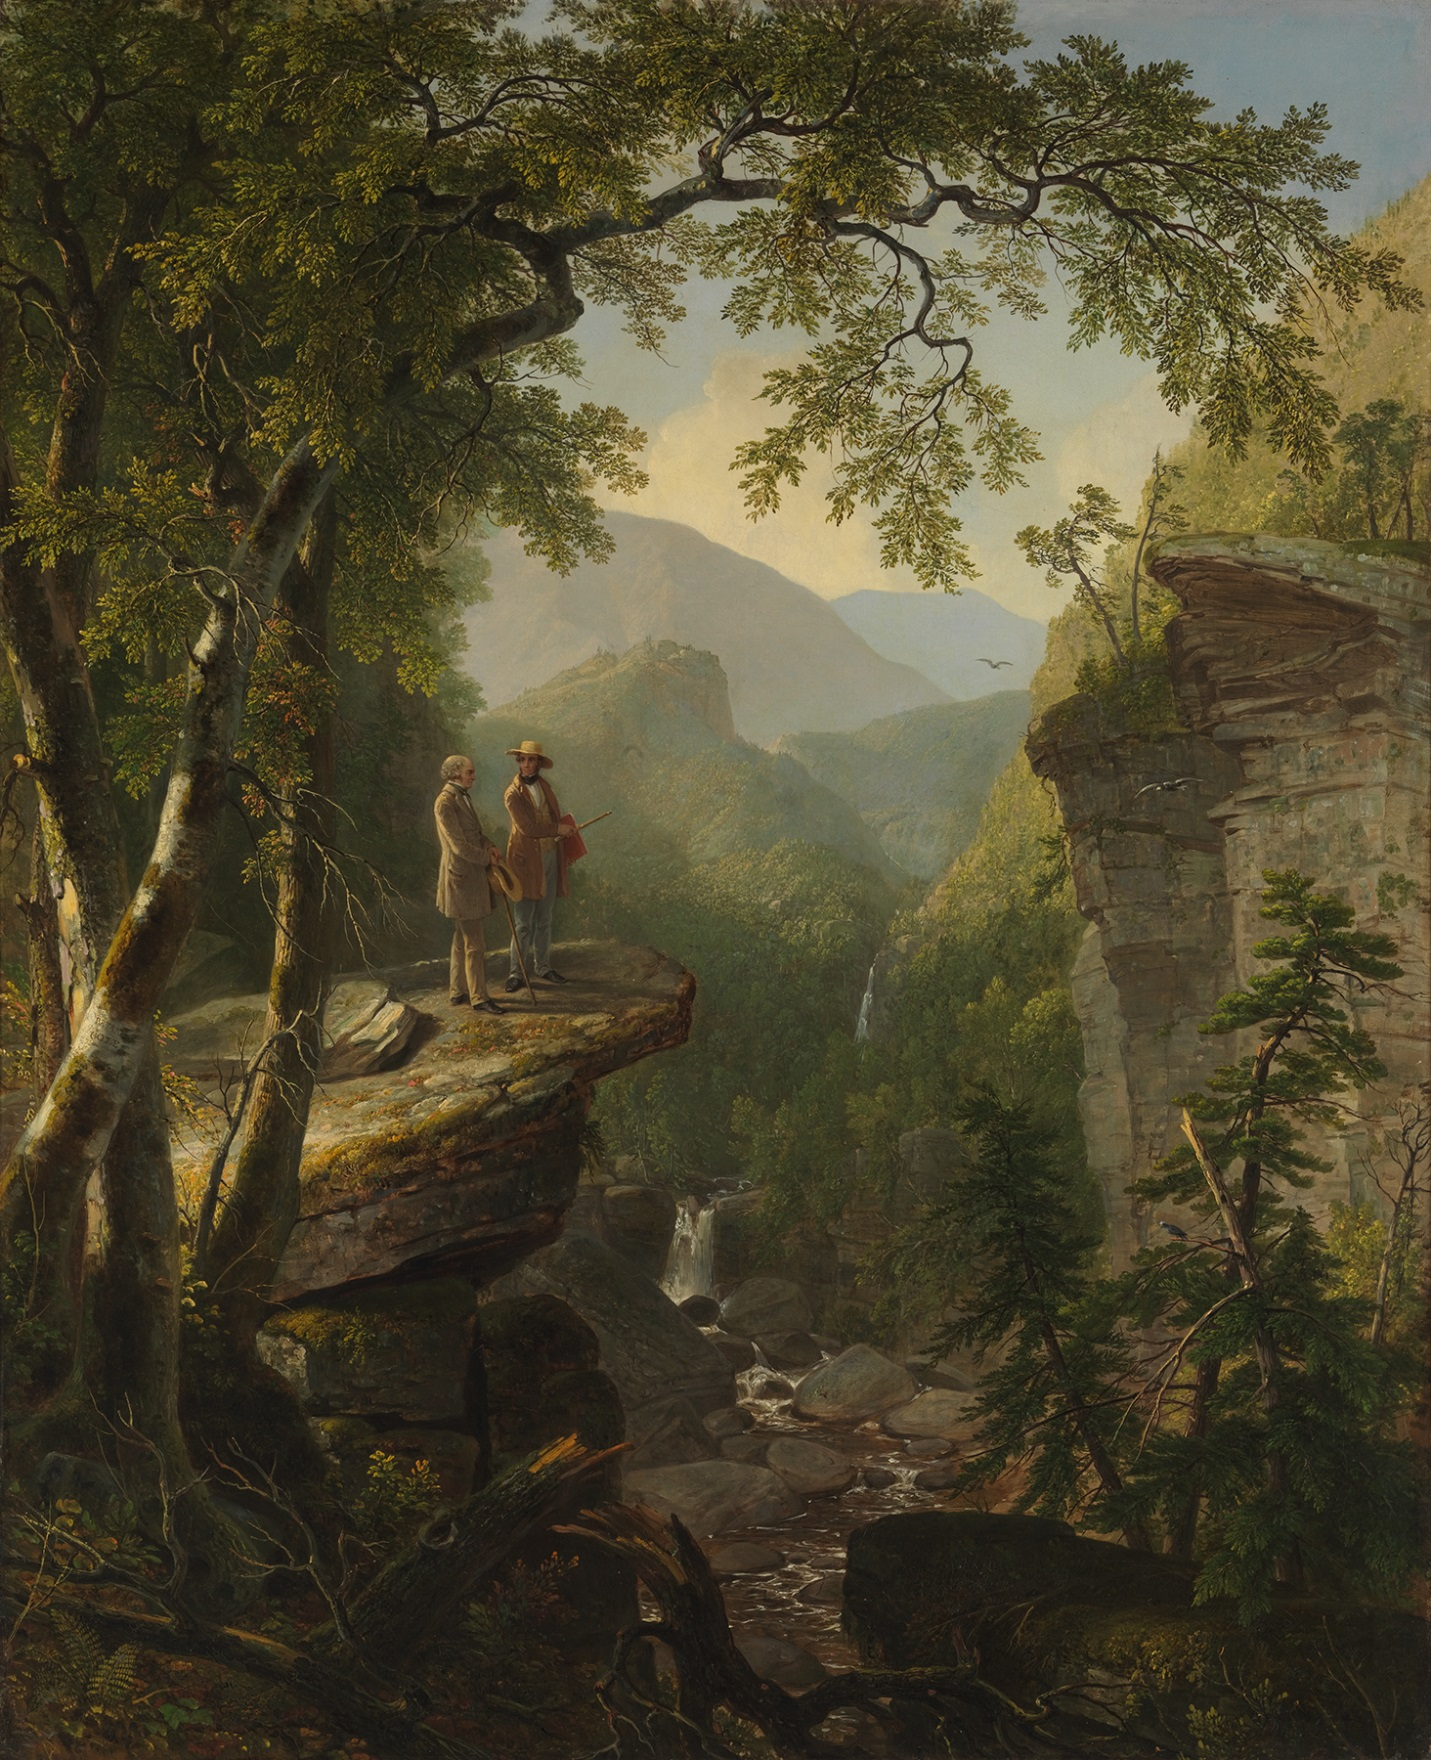 nature s nation rdquo the hudson river school and american landscape kindred spirits 1849 by asher b durand 1796 1886